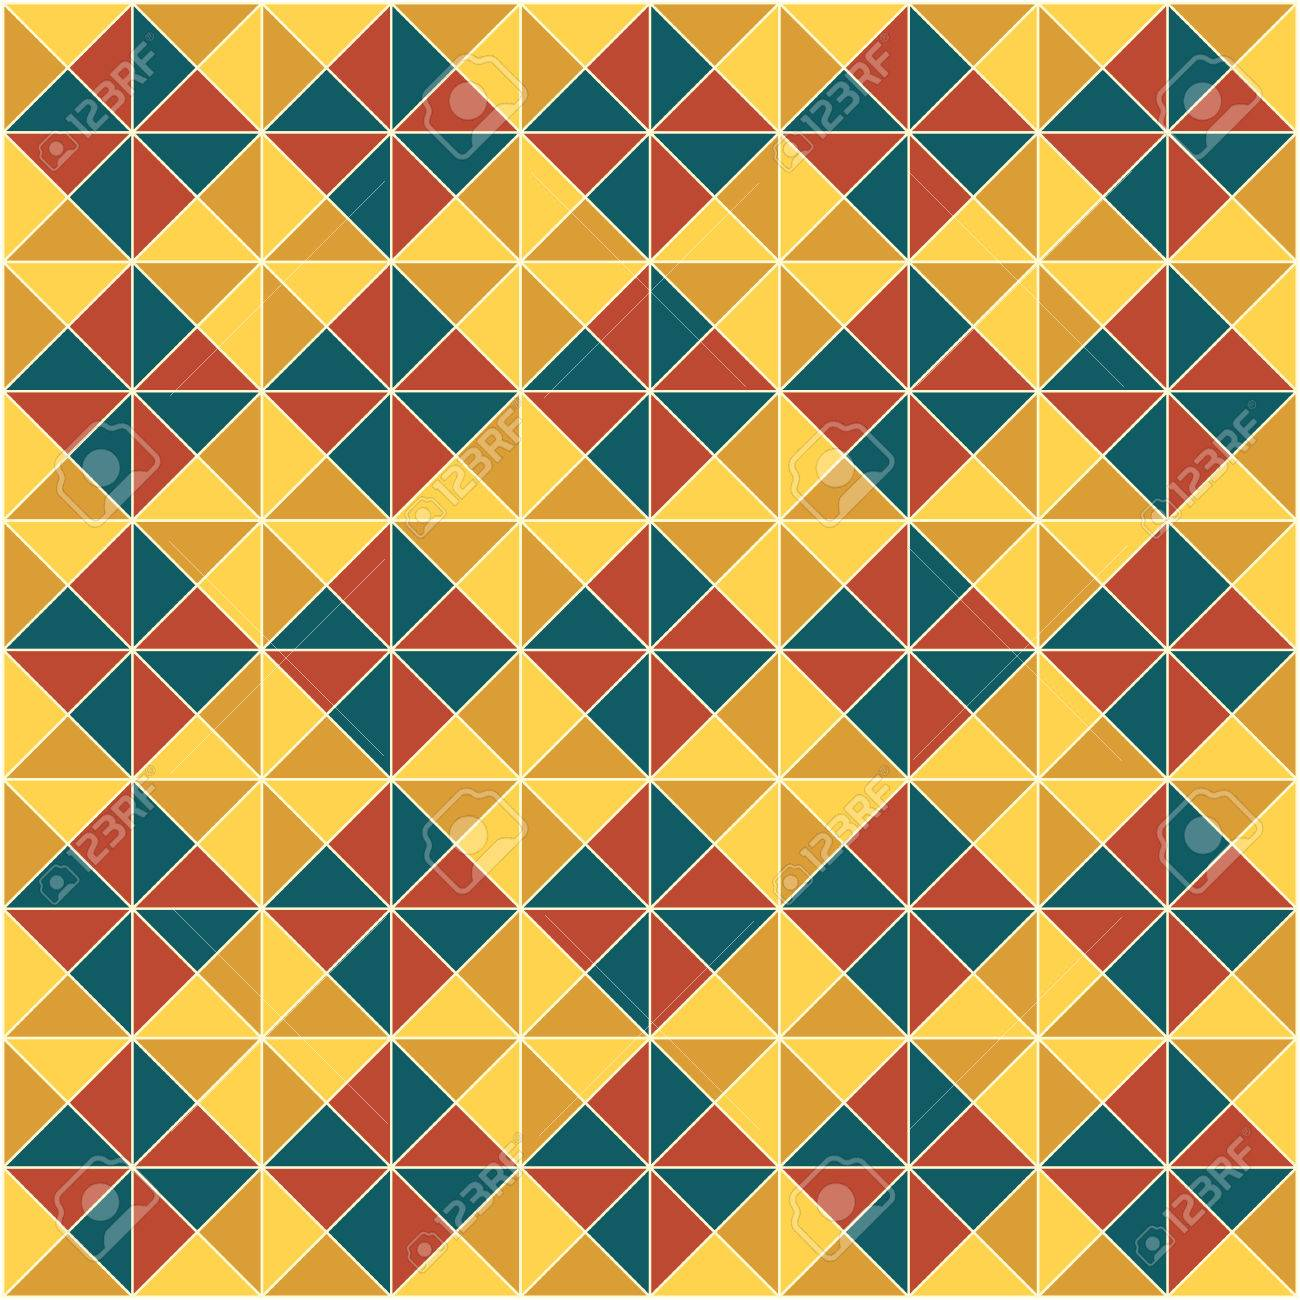 colorful square pattern background. repeating geometric shapes